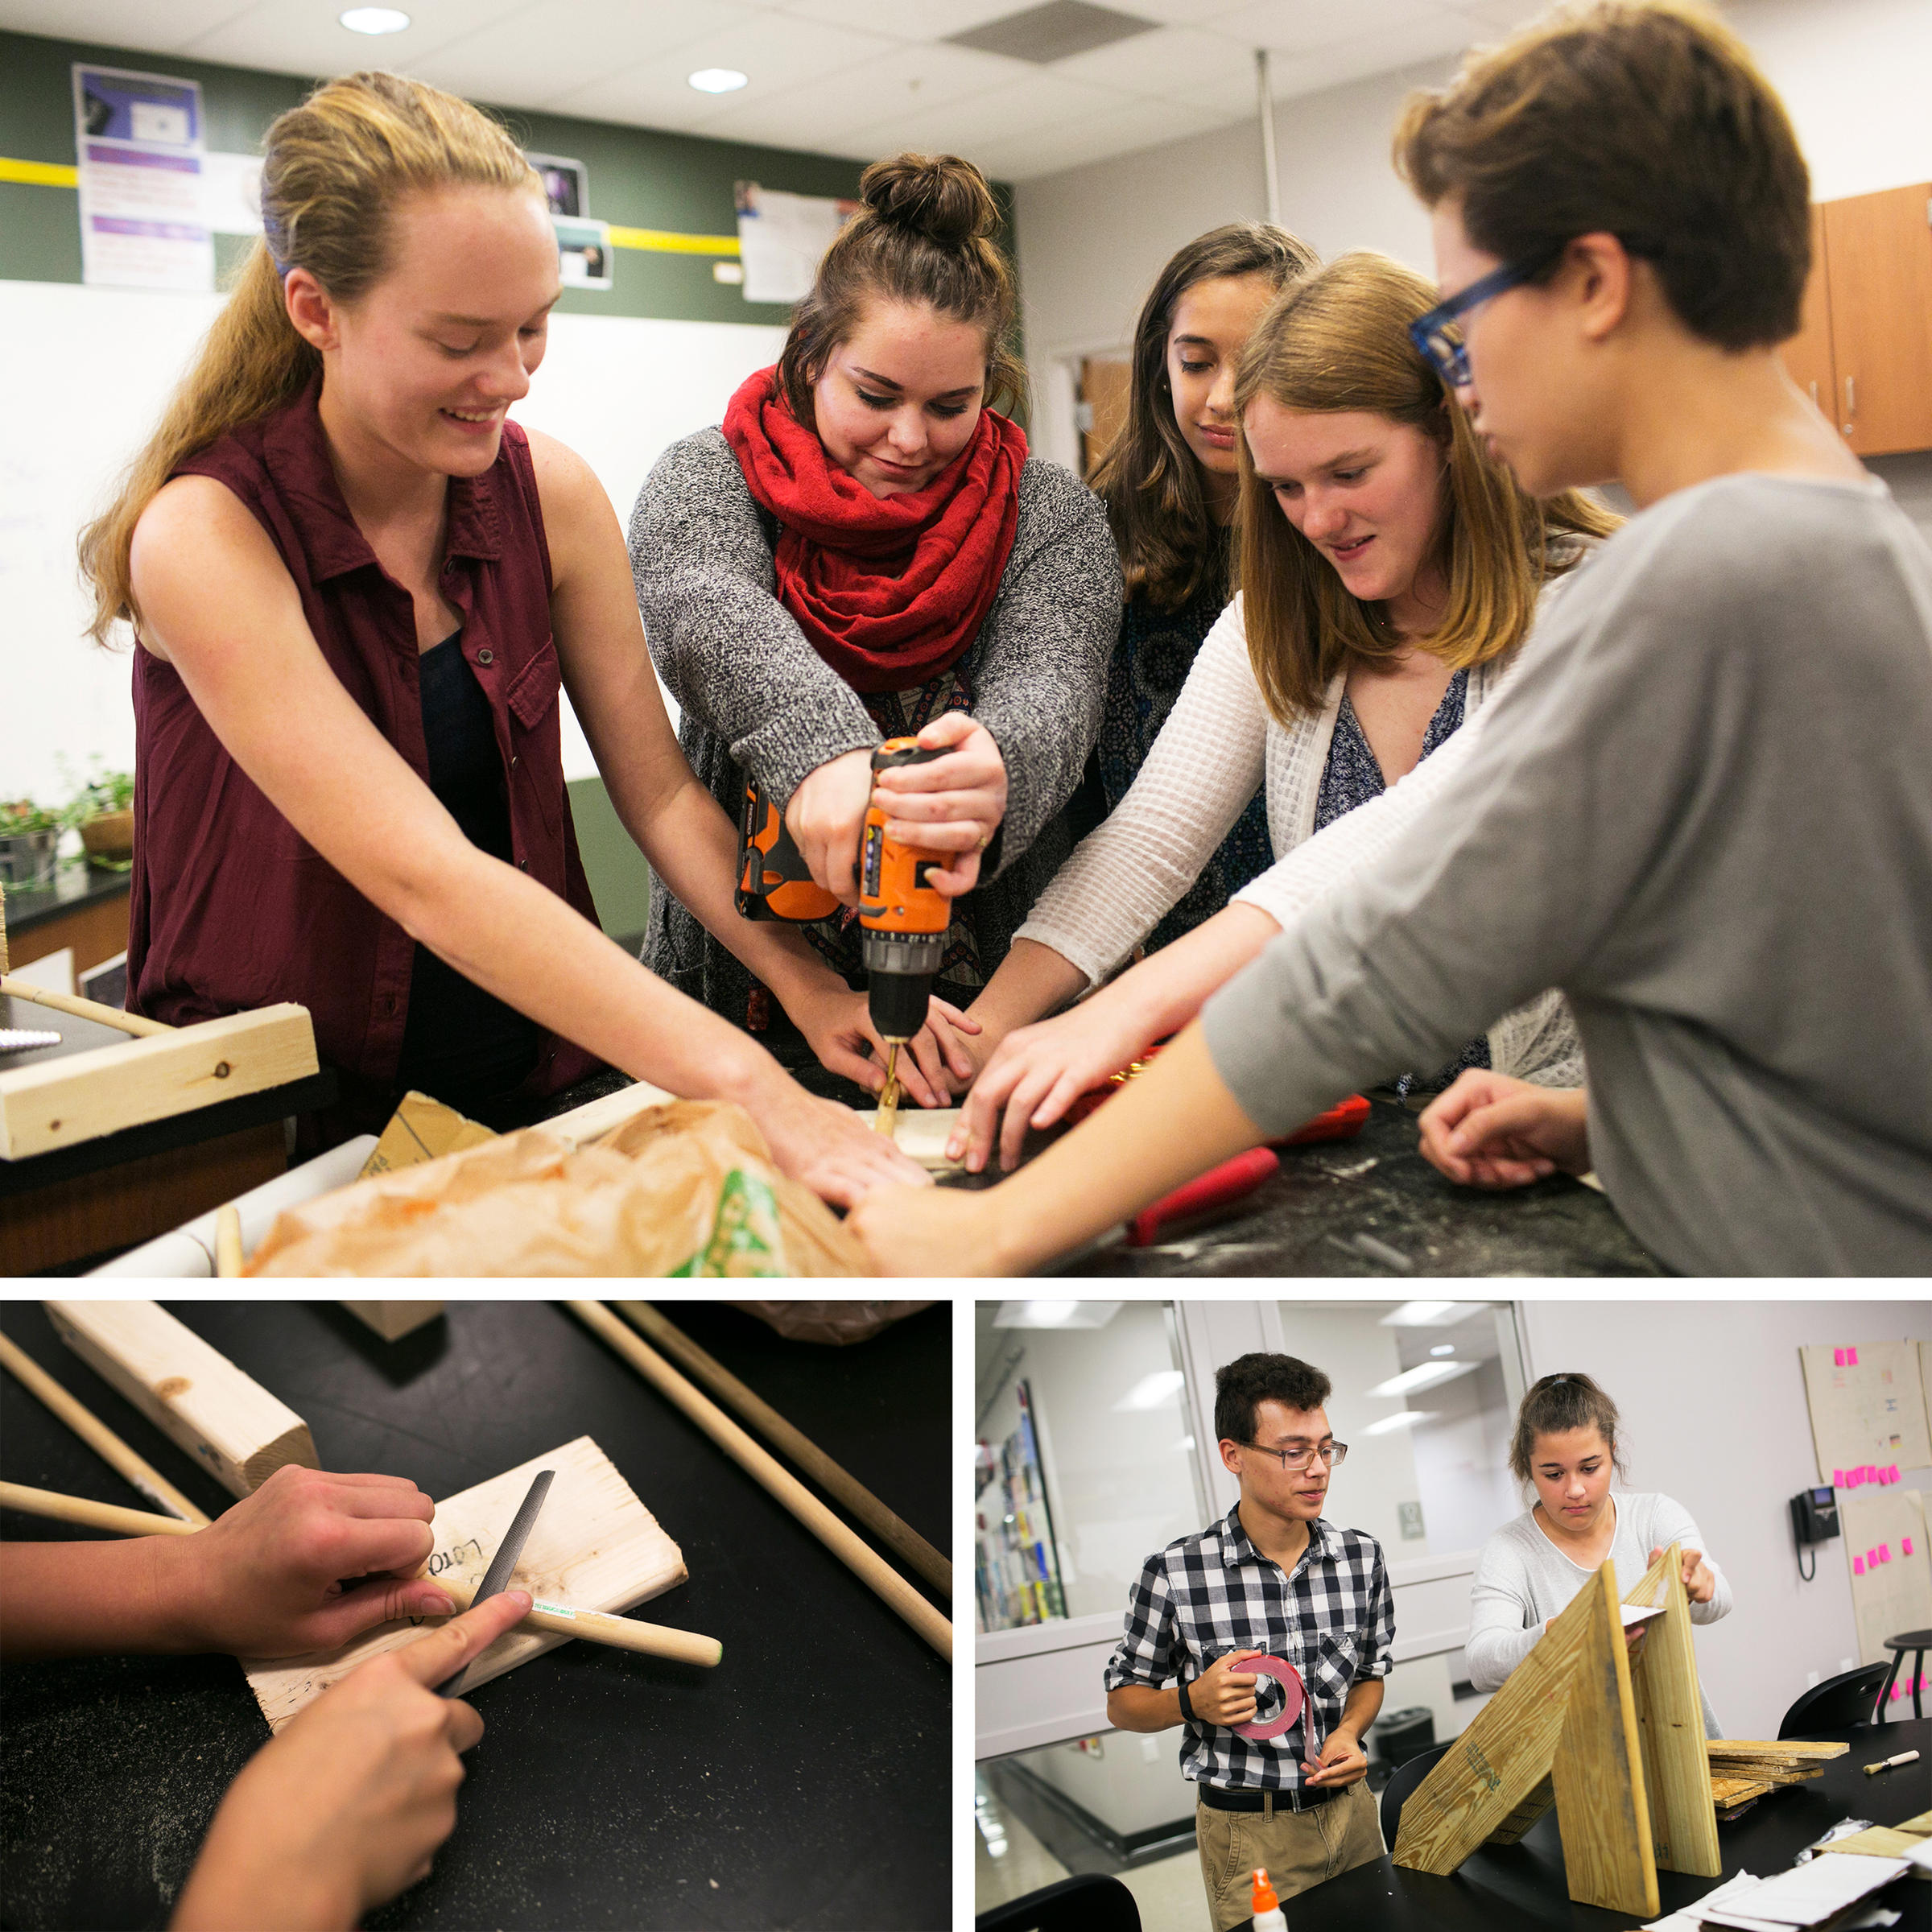 Stem School Tri Cities: A City Looks To STEM School To Lift Economy, But Will